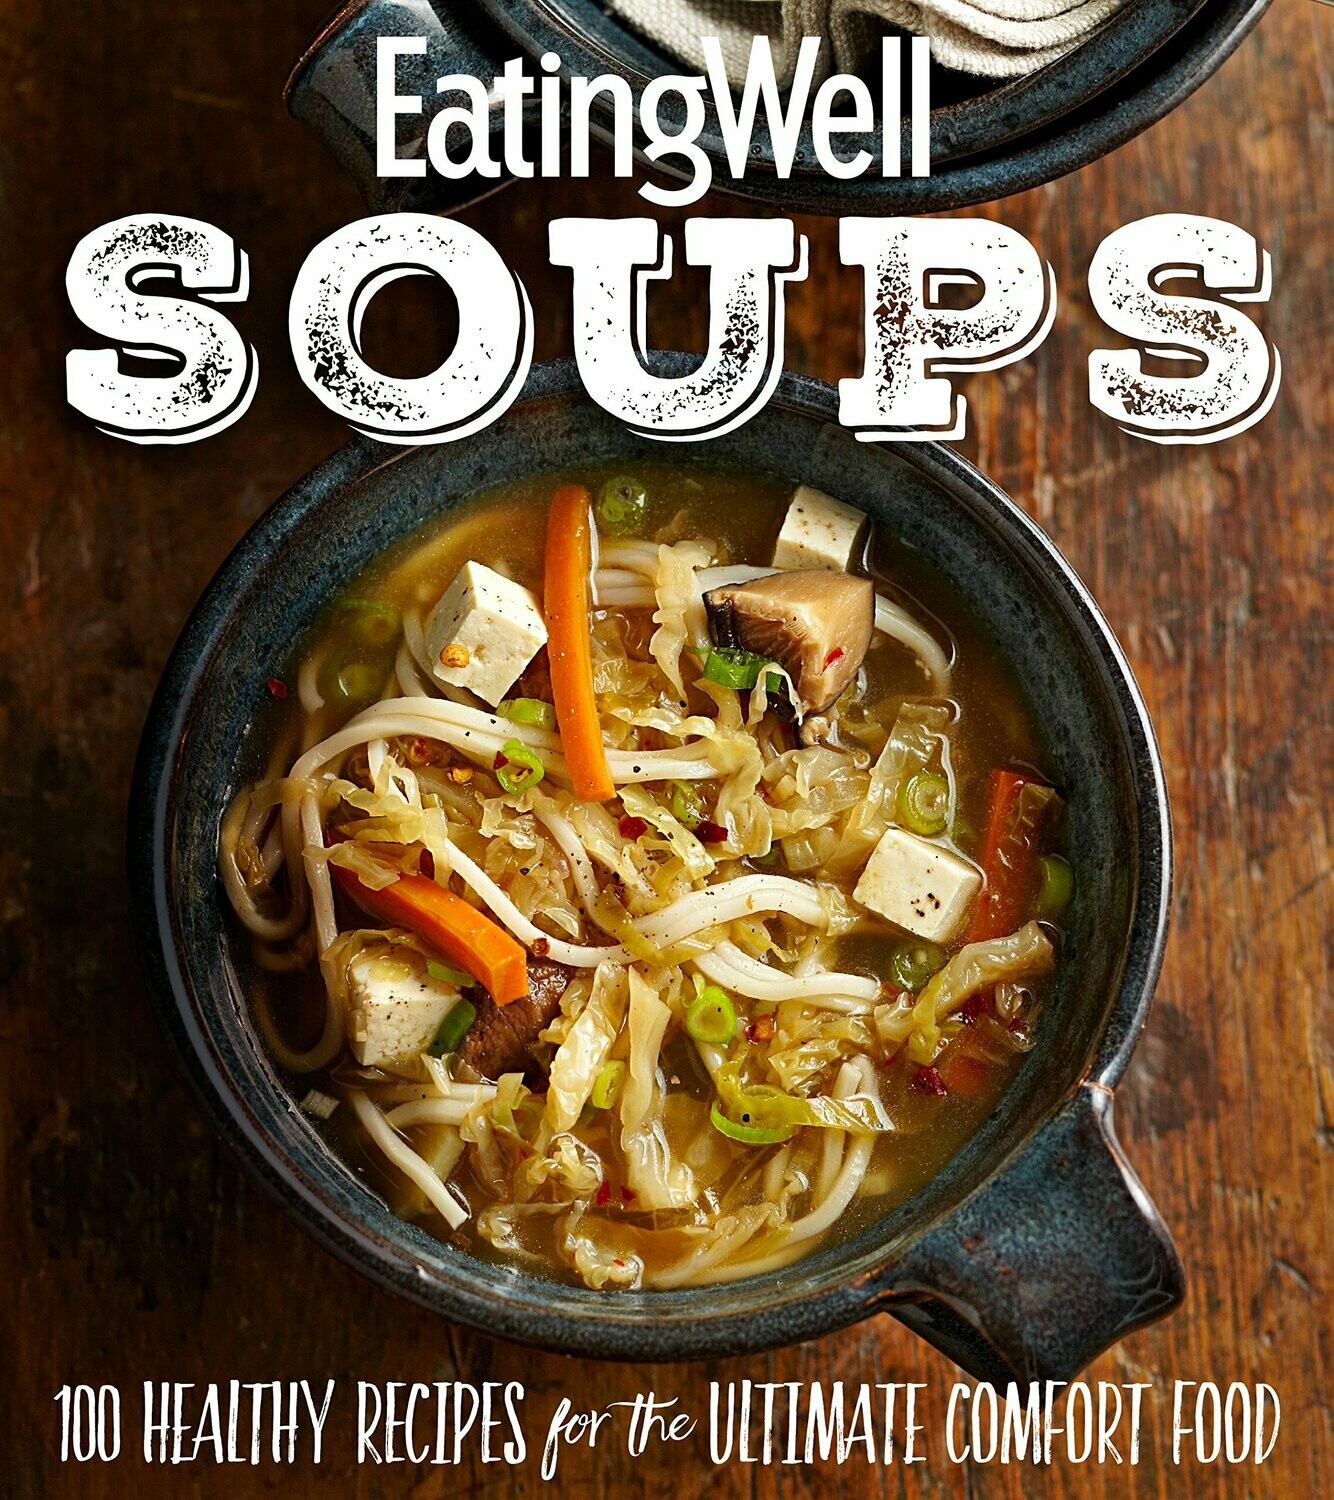 EatingWell Soups: 100 Healthy Recipes for the Ultimate Comfort Food [ebook] epub